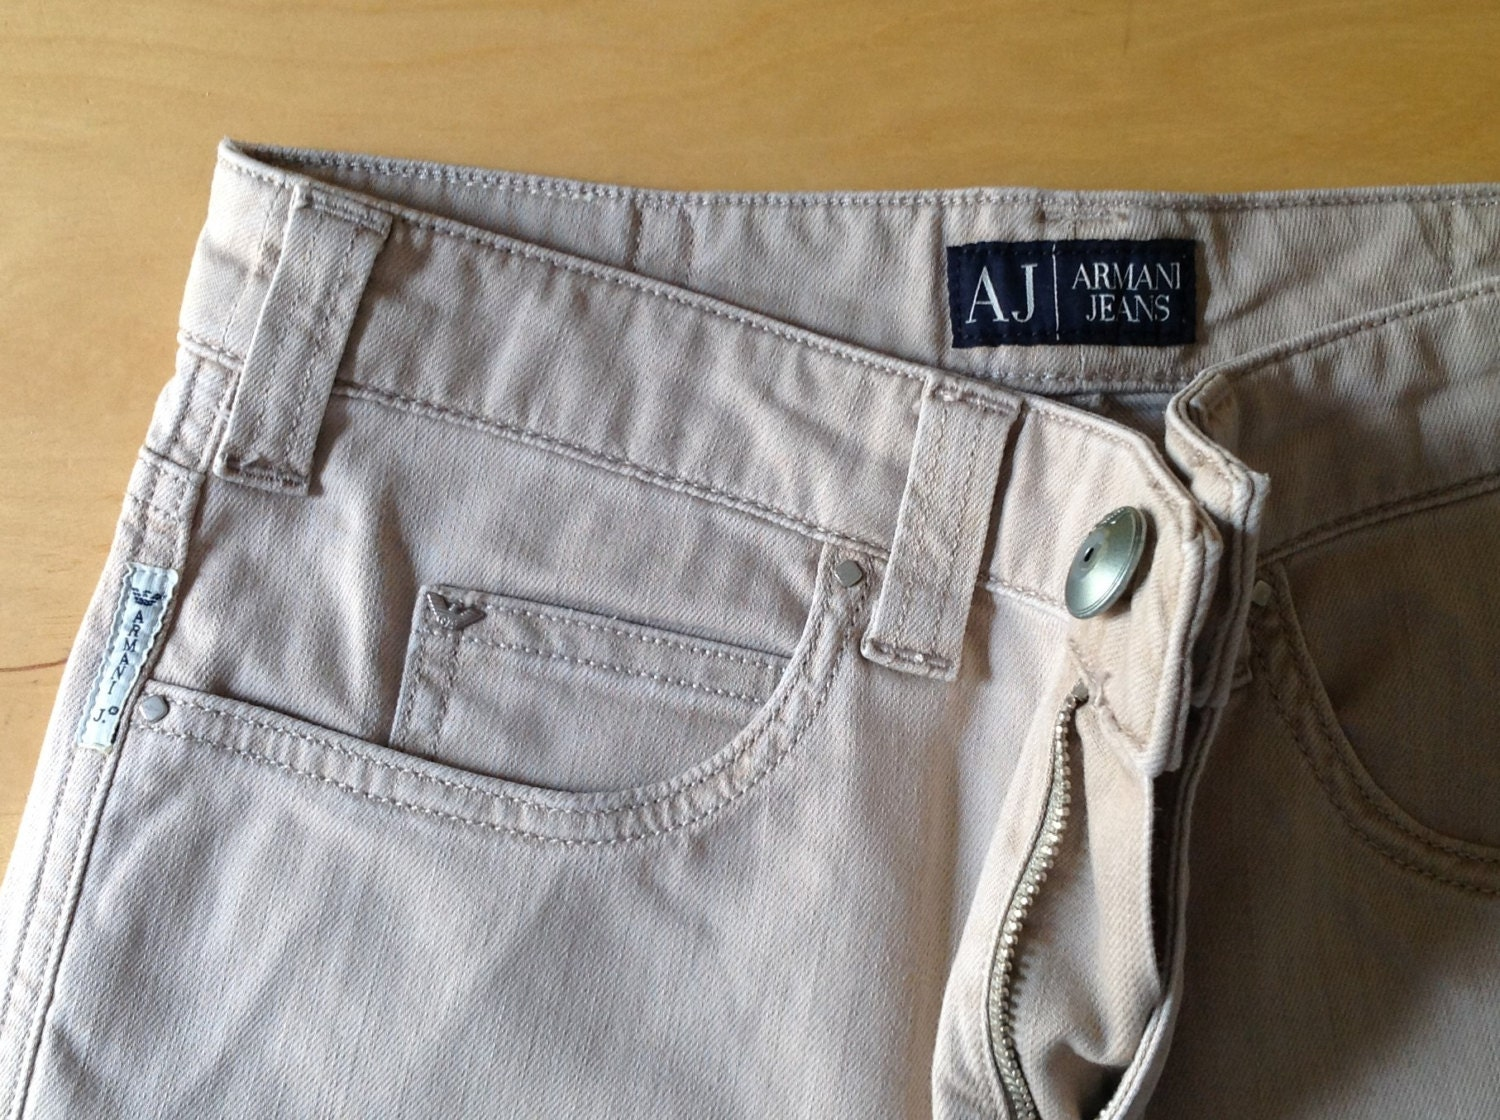 Vintage Armani Jeans womens jeans in off white with gold detail size 10  28 waist